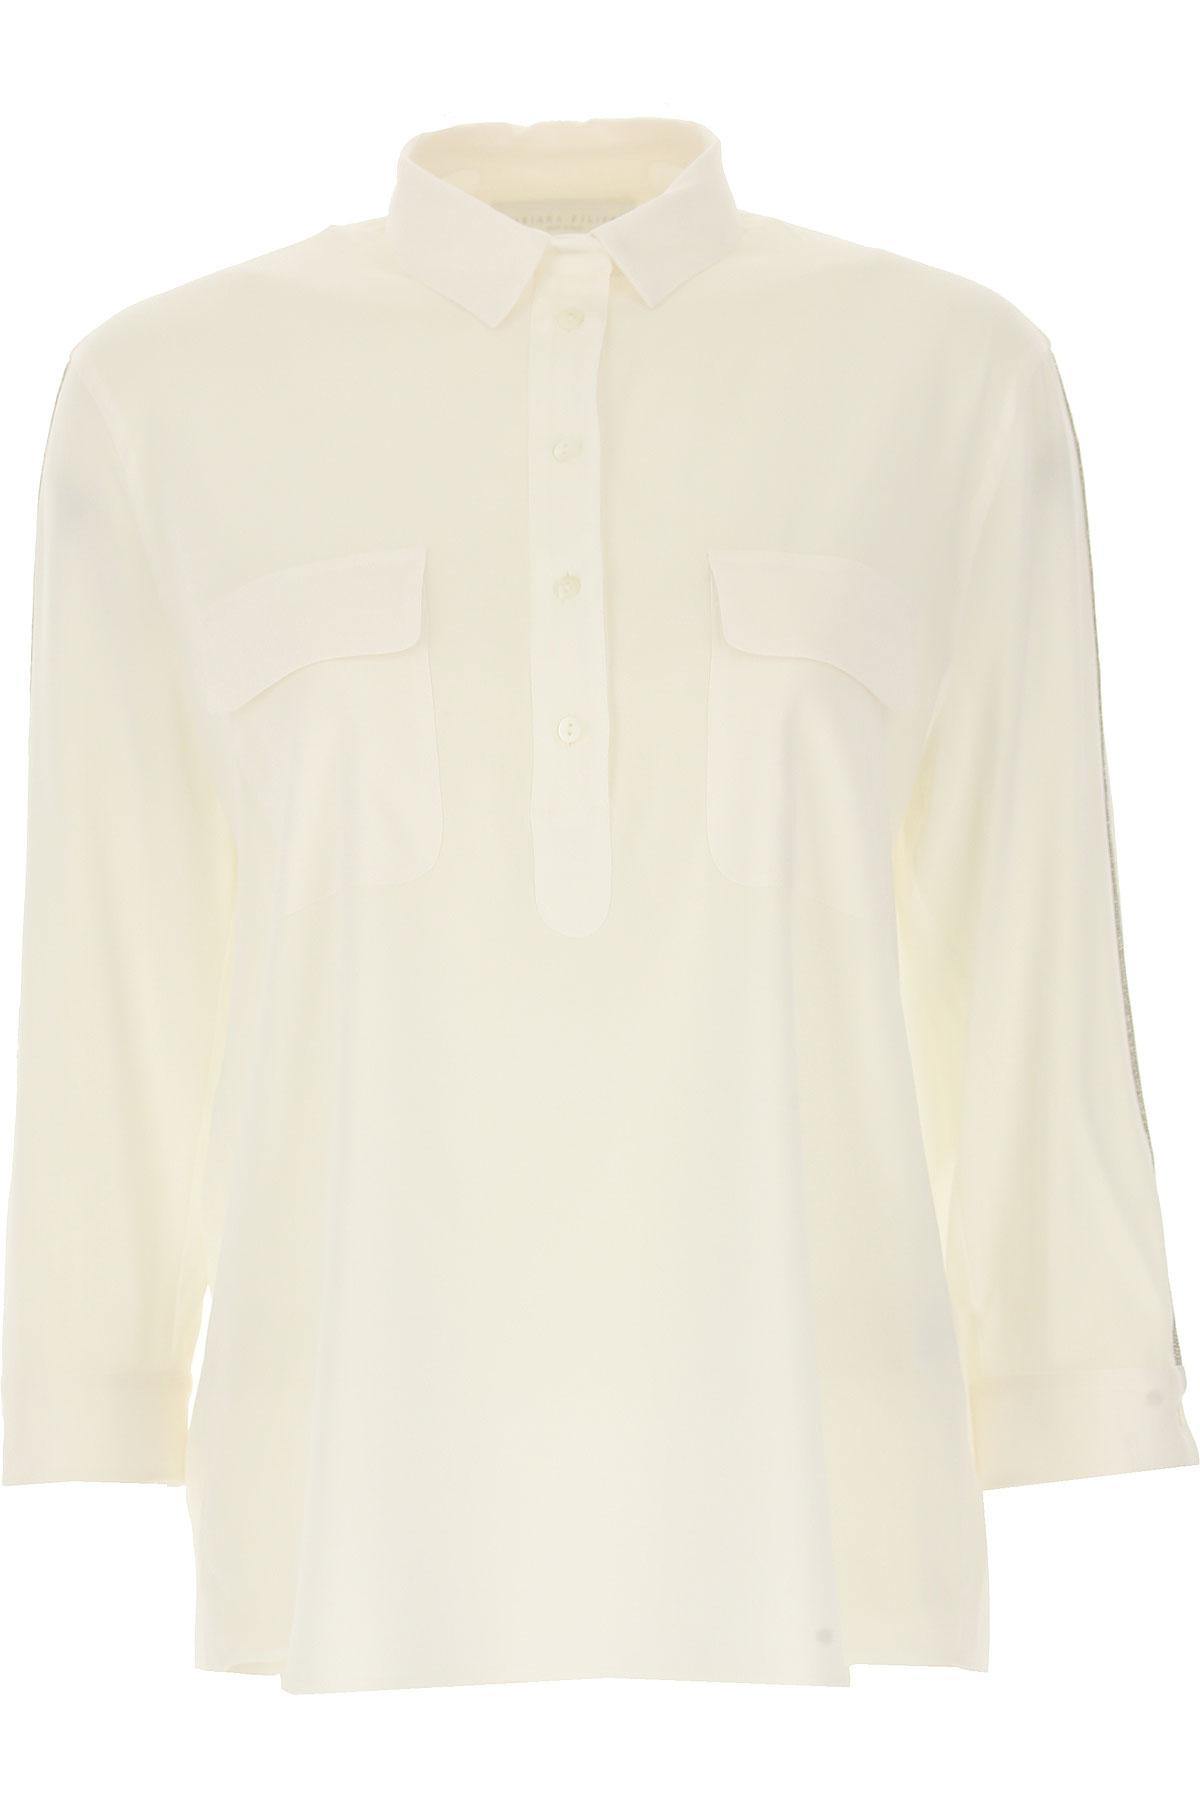 a70aaabff087d Lyst - Fabiana Filippi Shirt For Women in White